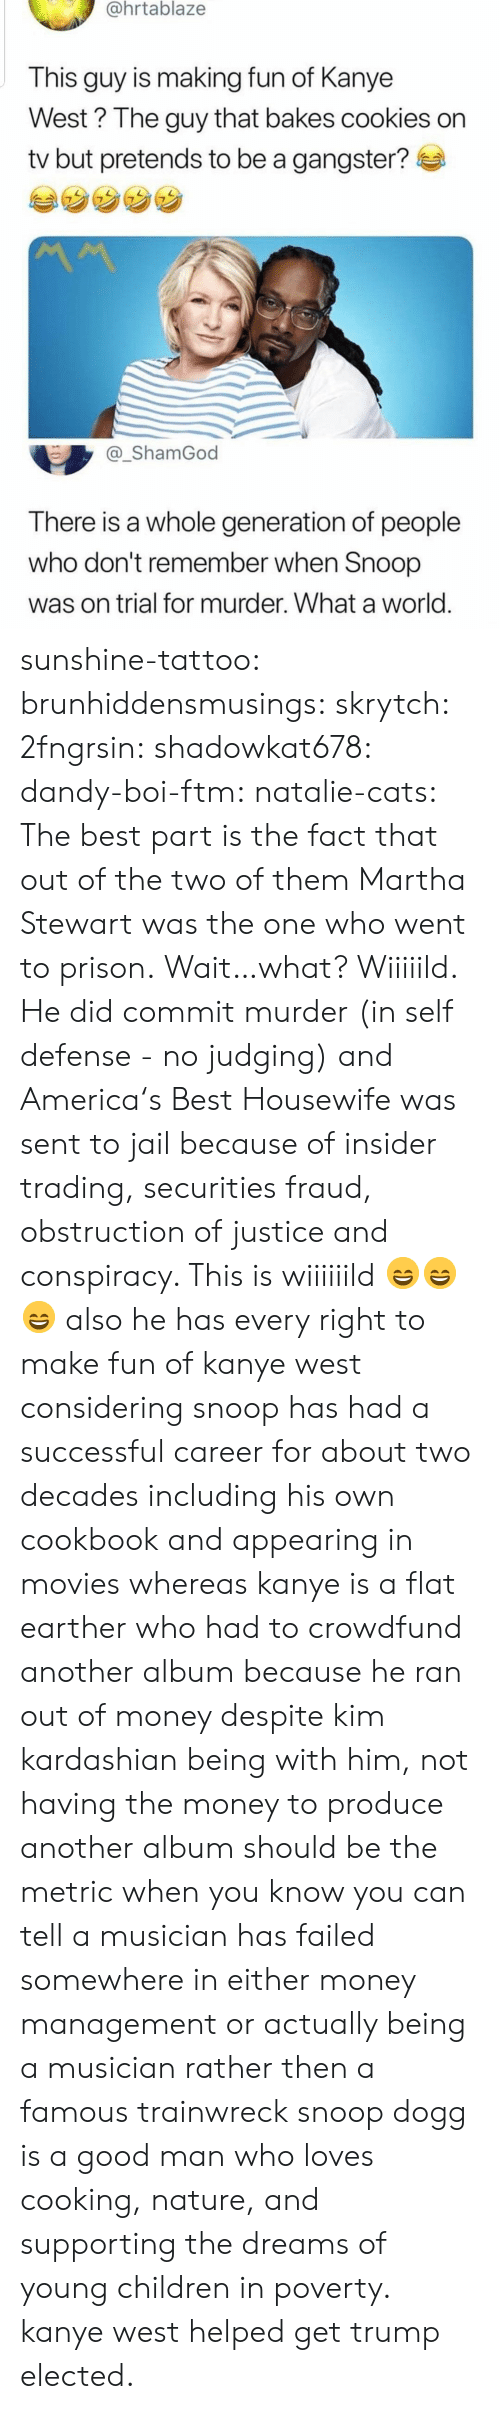 Tattoo: @hrtablaze  This guy is making fun of Kanye  West? The guy that bakes cookies on  tv but pretends to be a gangster?  _ShamGod  There is a whole generation of people  who don't remember when Snoop  was on trial for murder. What a world sunshine-tattoo: brunhiddensmusings:  skrytch:  2fngrsin:  shadowkat678:  dandy-boi-ftm:   natalie-cats:   The best part is the fact that out of the two of them Martha Stewart was the one who went to prison.   Wait…what?   Wiiiiild. He did commit murder (in self defense - no judging) and America's Best Housewife was sent to jail because of insider trading, securities fraud, obstruction of justice and conspiracy. This is wiiiiiild 😄😄😄    also he has every right to make fun of kanye west considering snoop has had a successful career for about two decades including his own cookbook and appearing in movies whereas kanye is a flat earther who had to crowdfund another album because he ran out of money despite kim kardashian being with him, not having the money to produce another album should be the metric when you know you can tell a musician has failed somewhere in either money management or actually being a musician rather then a famous trainwreck   snoop dogg is a good man who loves cooking, nature, and supporting the dreams of young children in poverty. kanye west helped get trump elected.